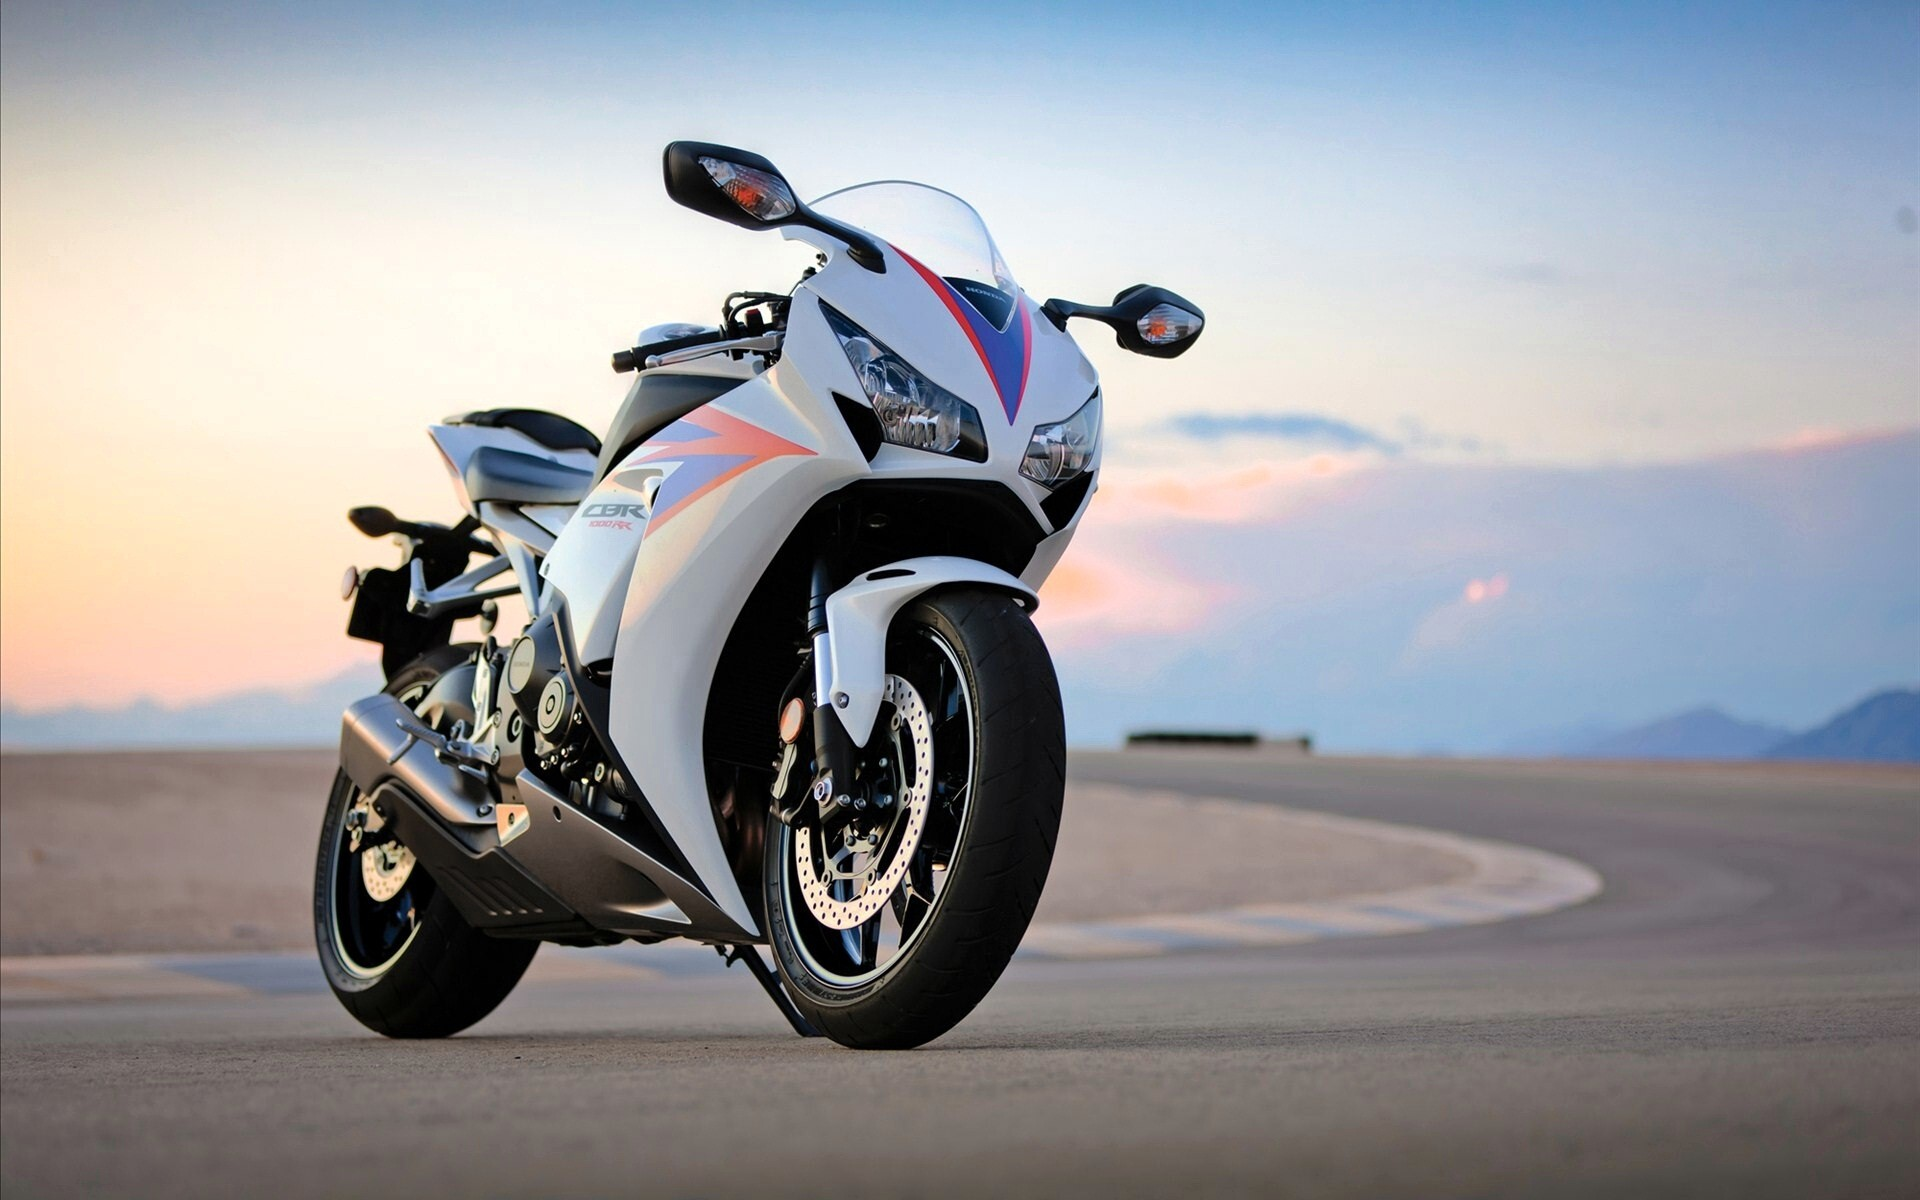 Hd Wallpapers Of Bikes For: Superb Honda CBR Bike HD Wallpapers